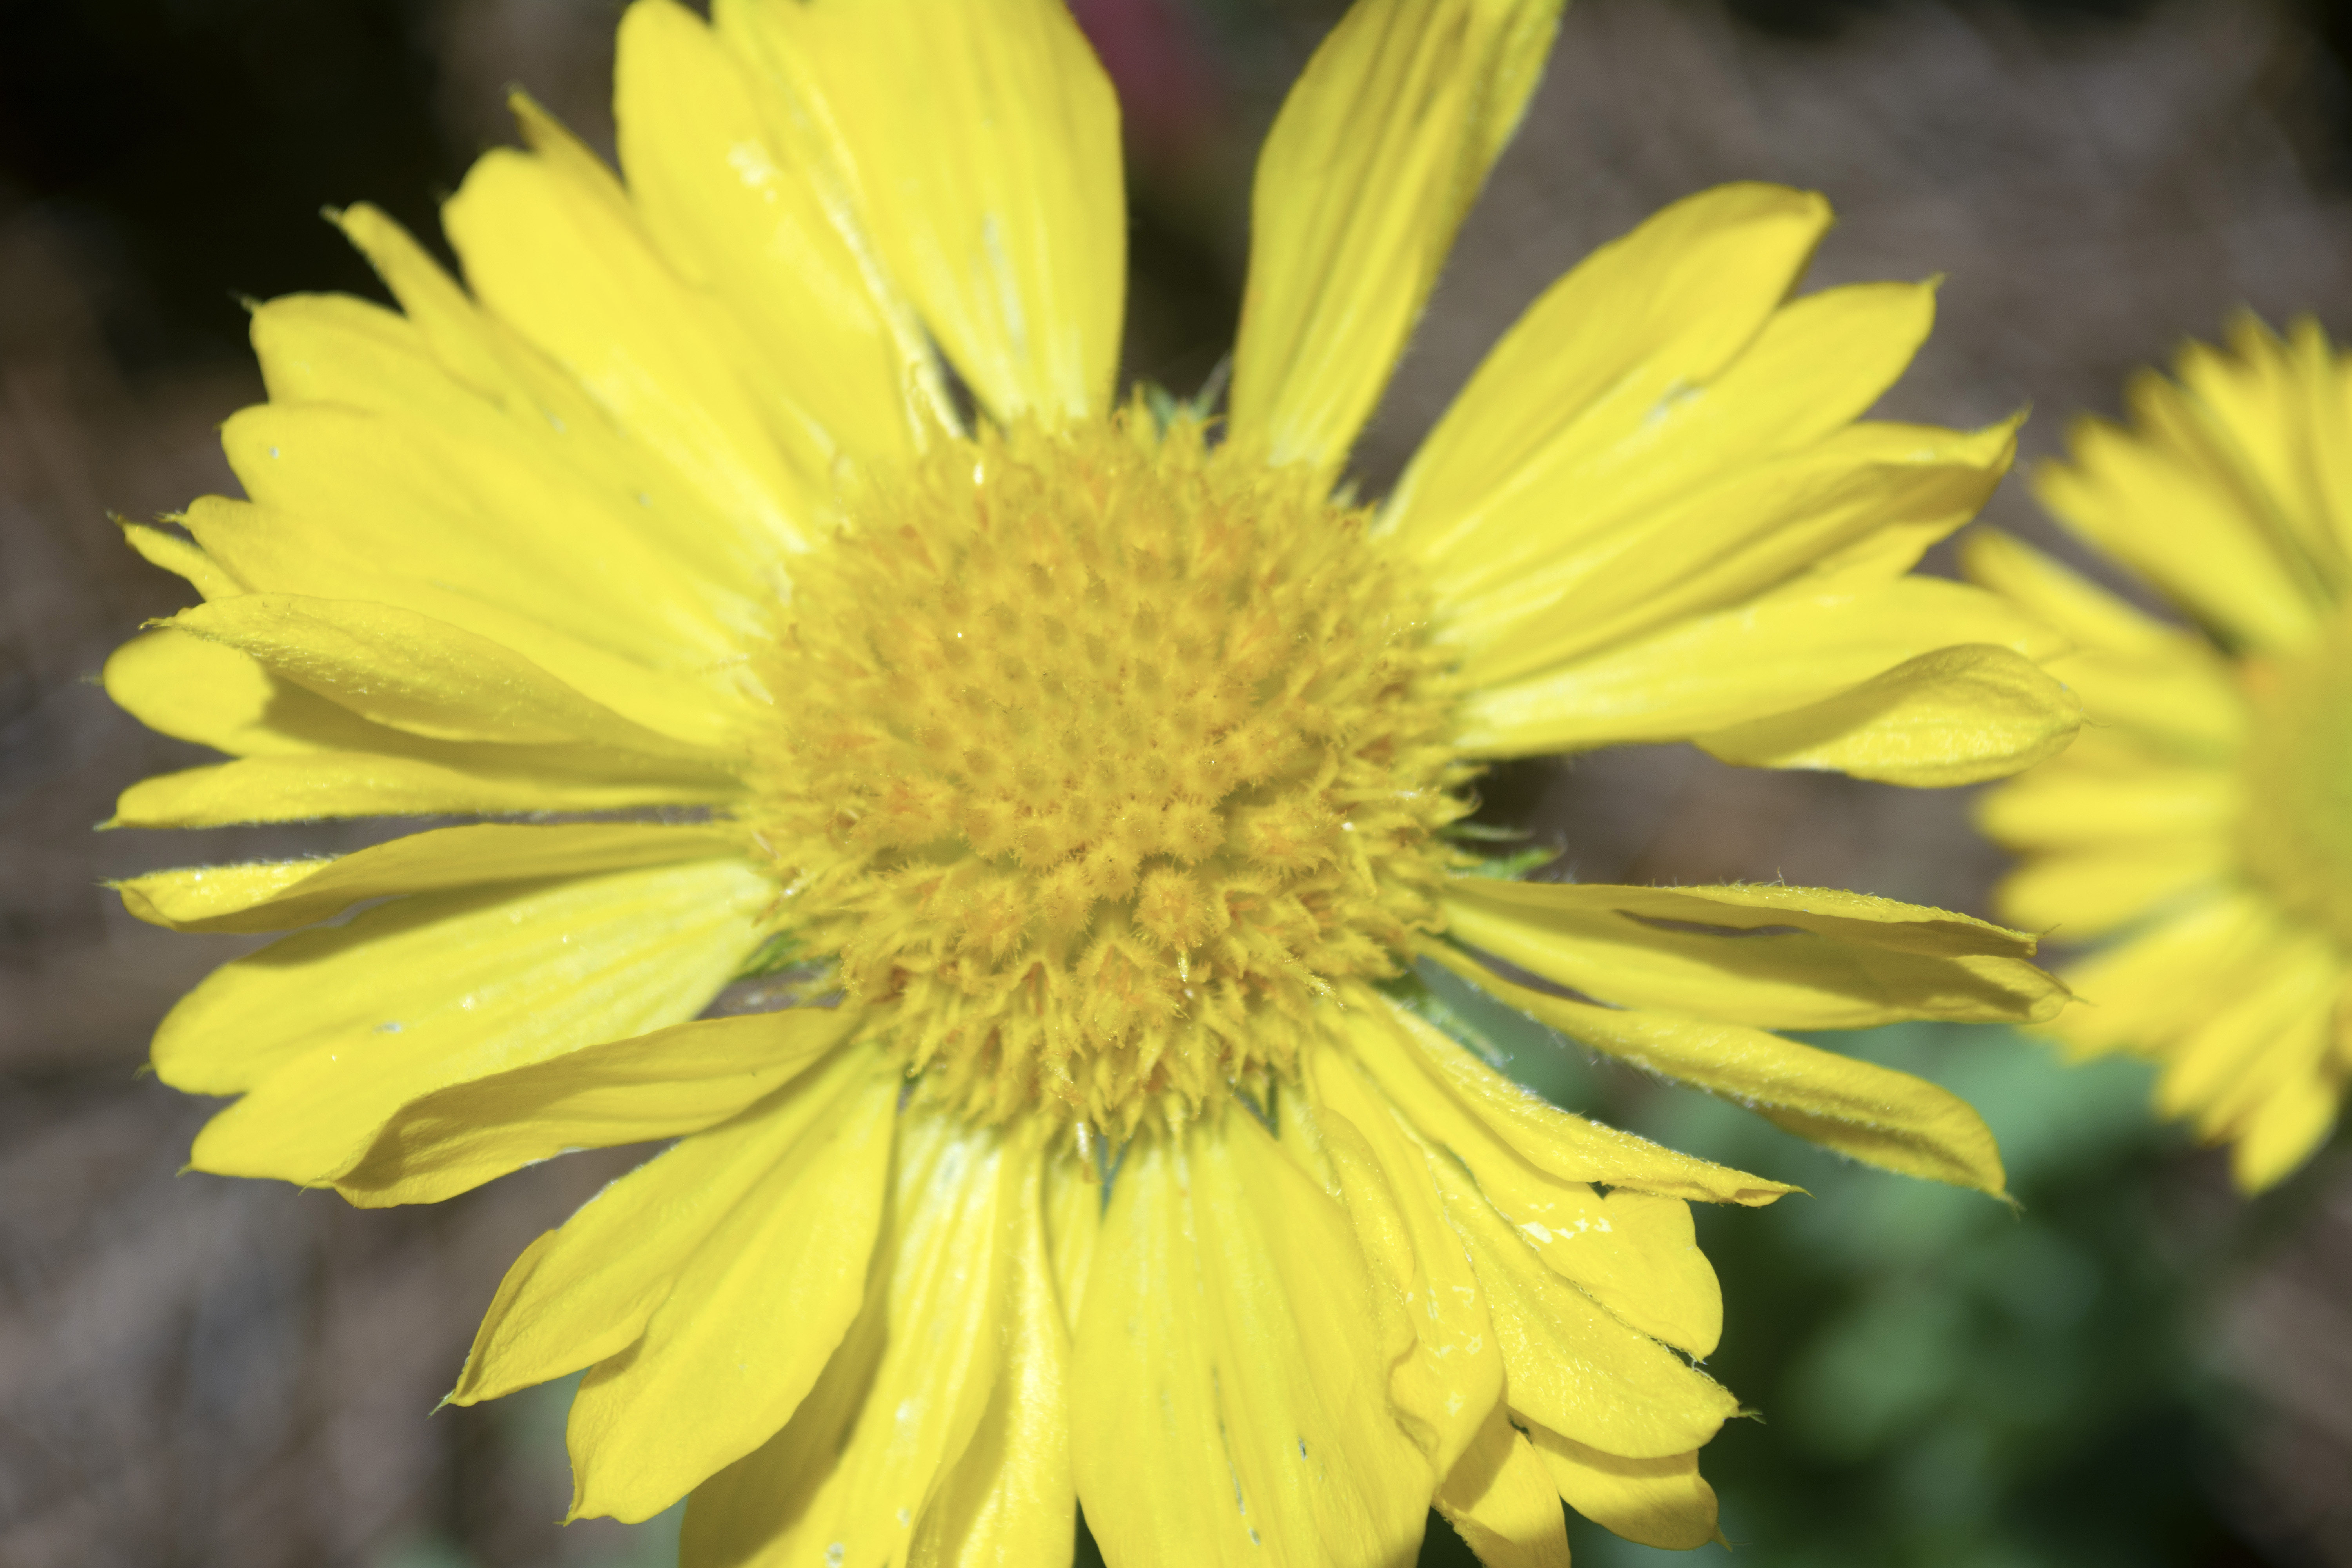 A yellow flower at Alfred B. McCabe Garden State Park in Tallahassee, FL